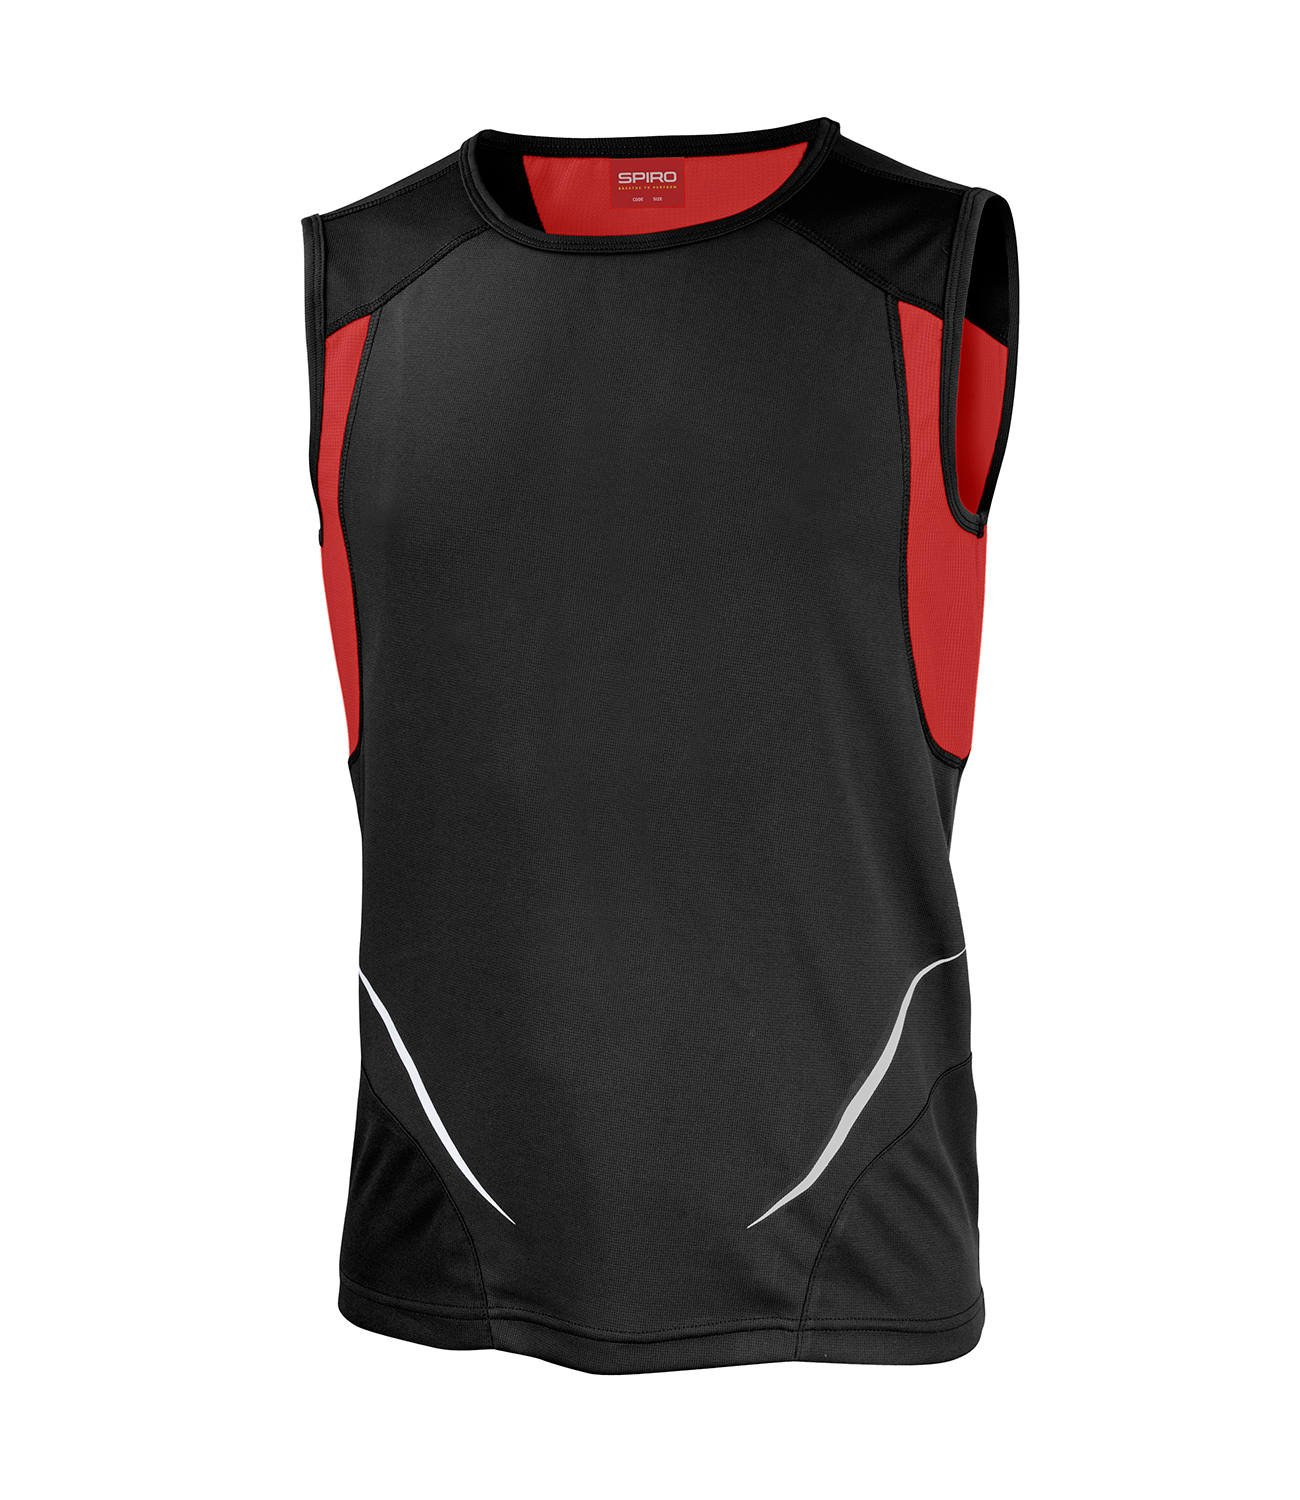 Spiro Adults Athletic Running Vest